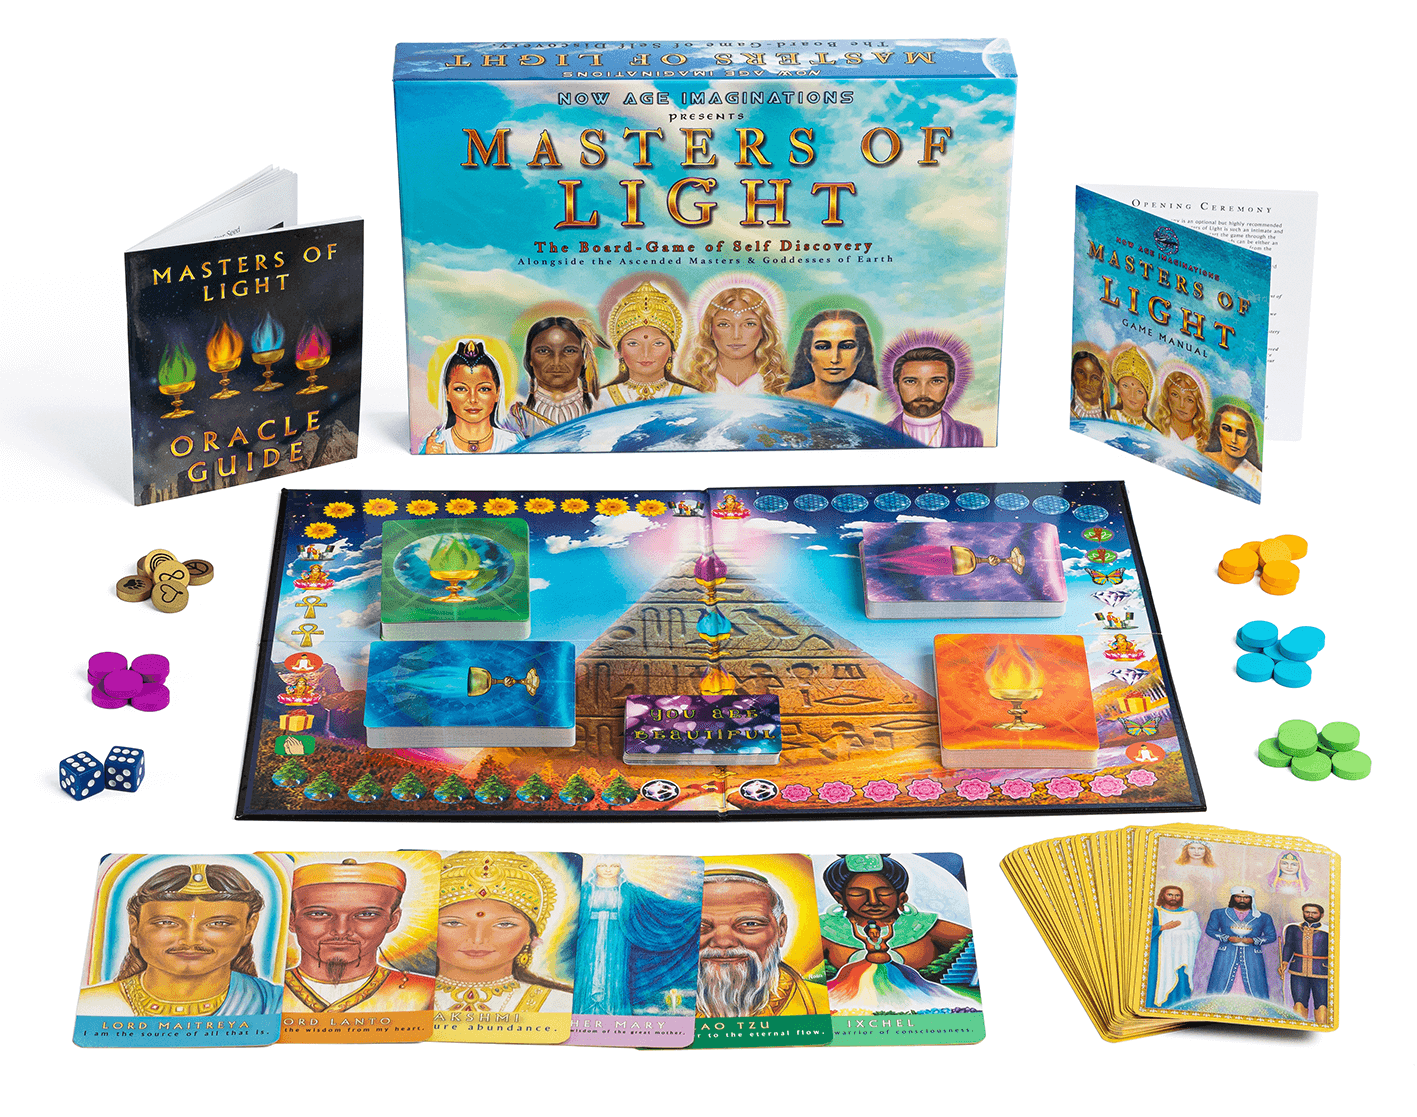 Masters of Light - The Ascended Masters Oracle Board-Game